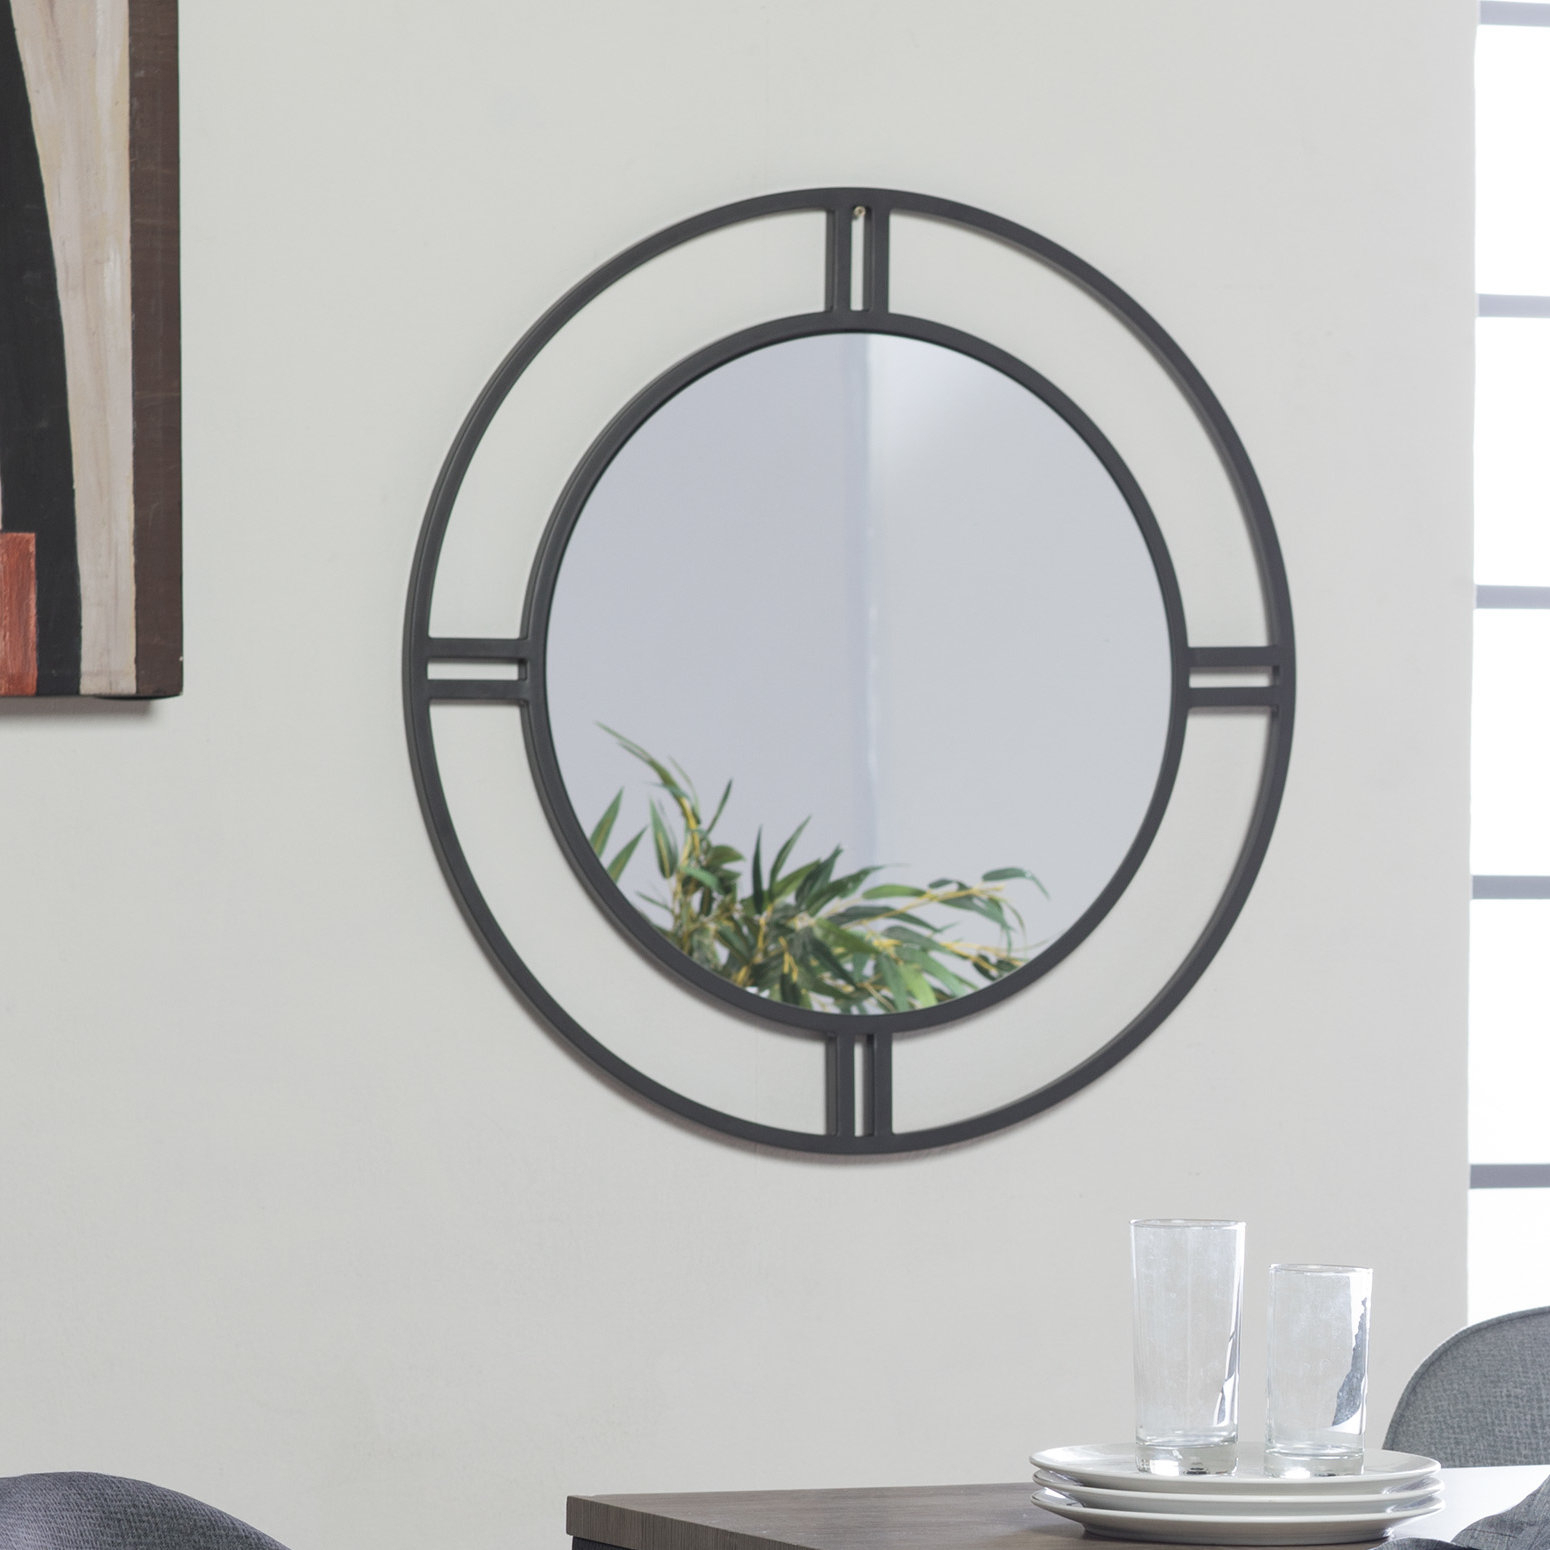 Camber Round Accent Mirror | Joss & Main regarding Swagger Accent Wall Mirrors (Image 5 of 30)